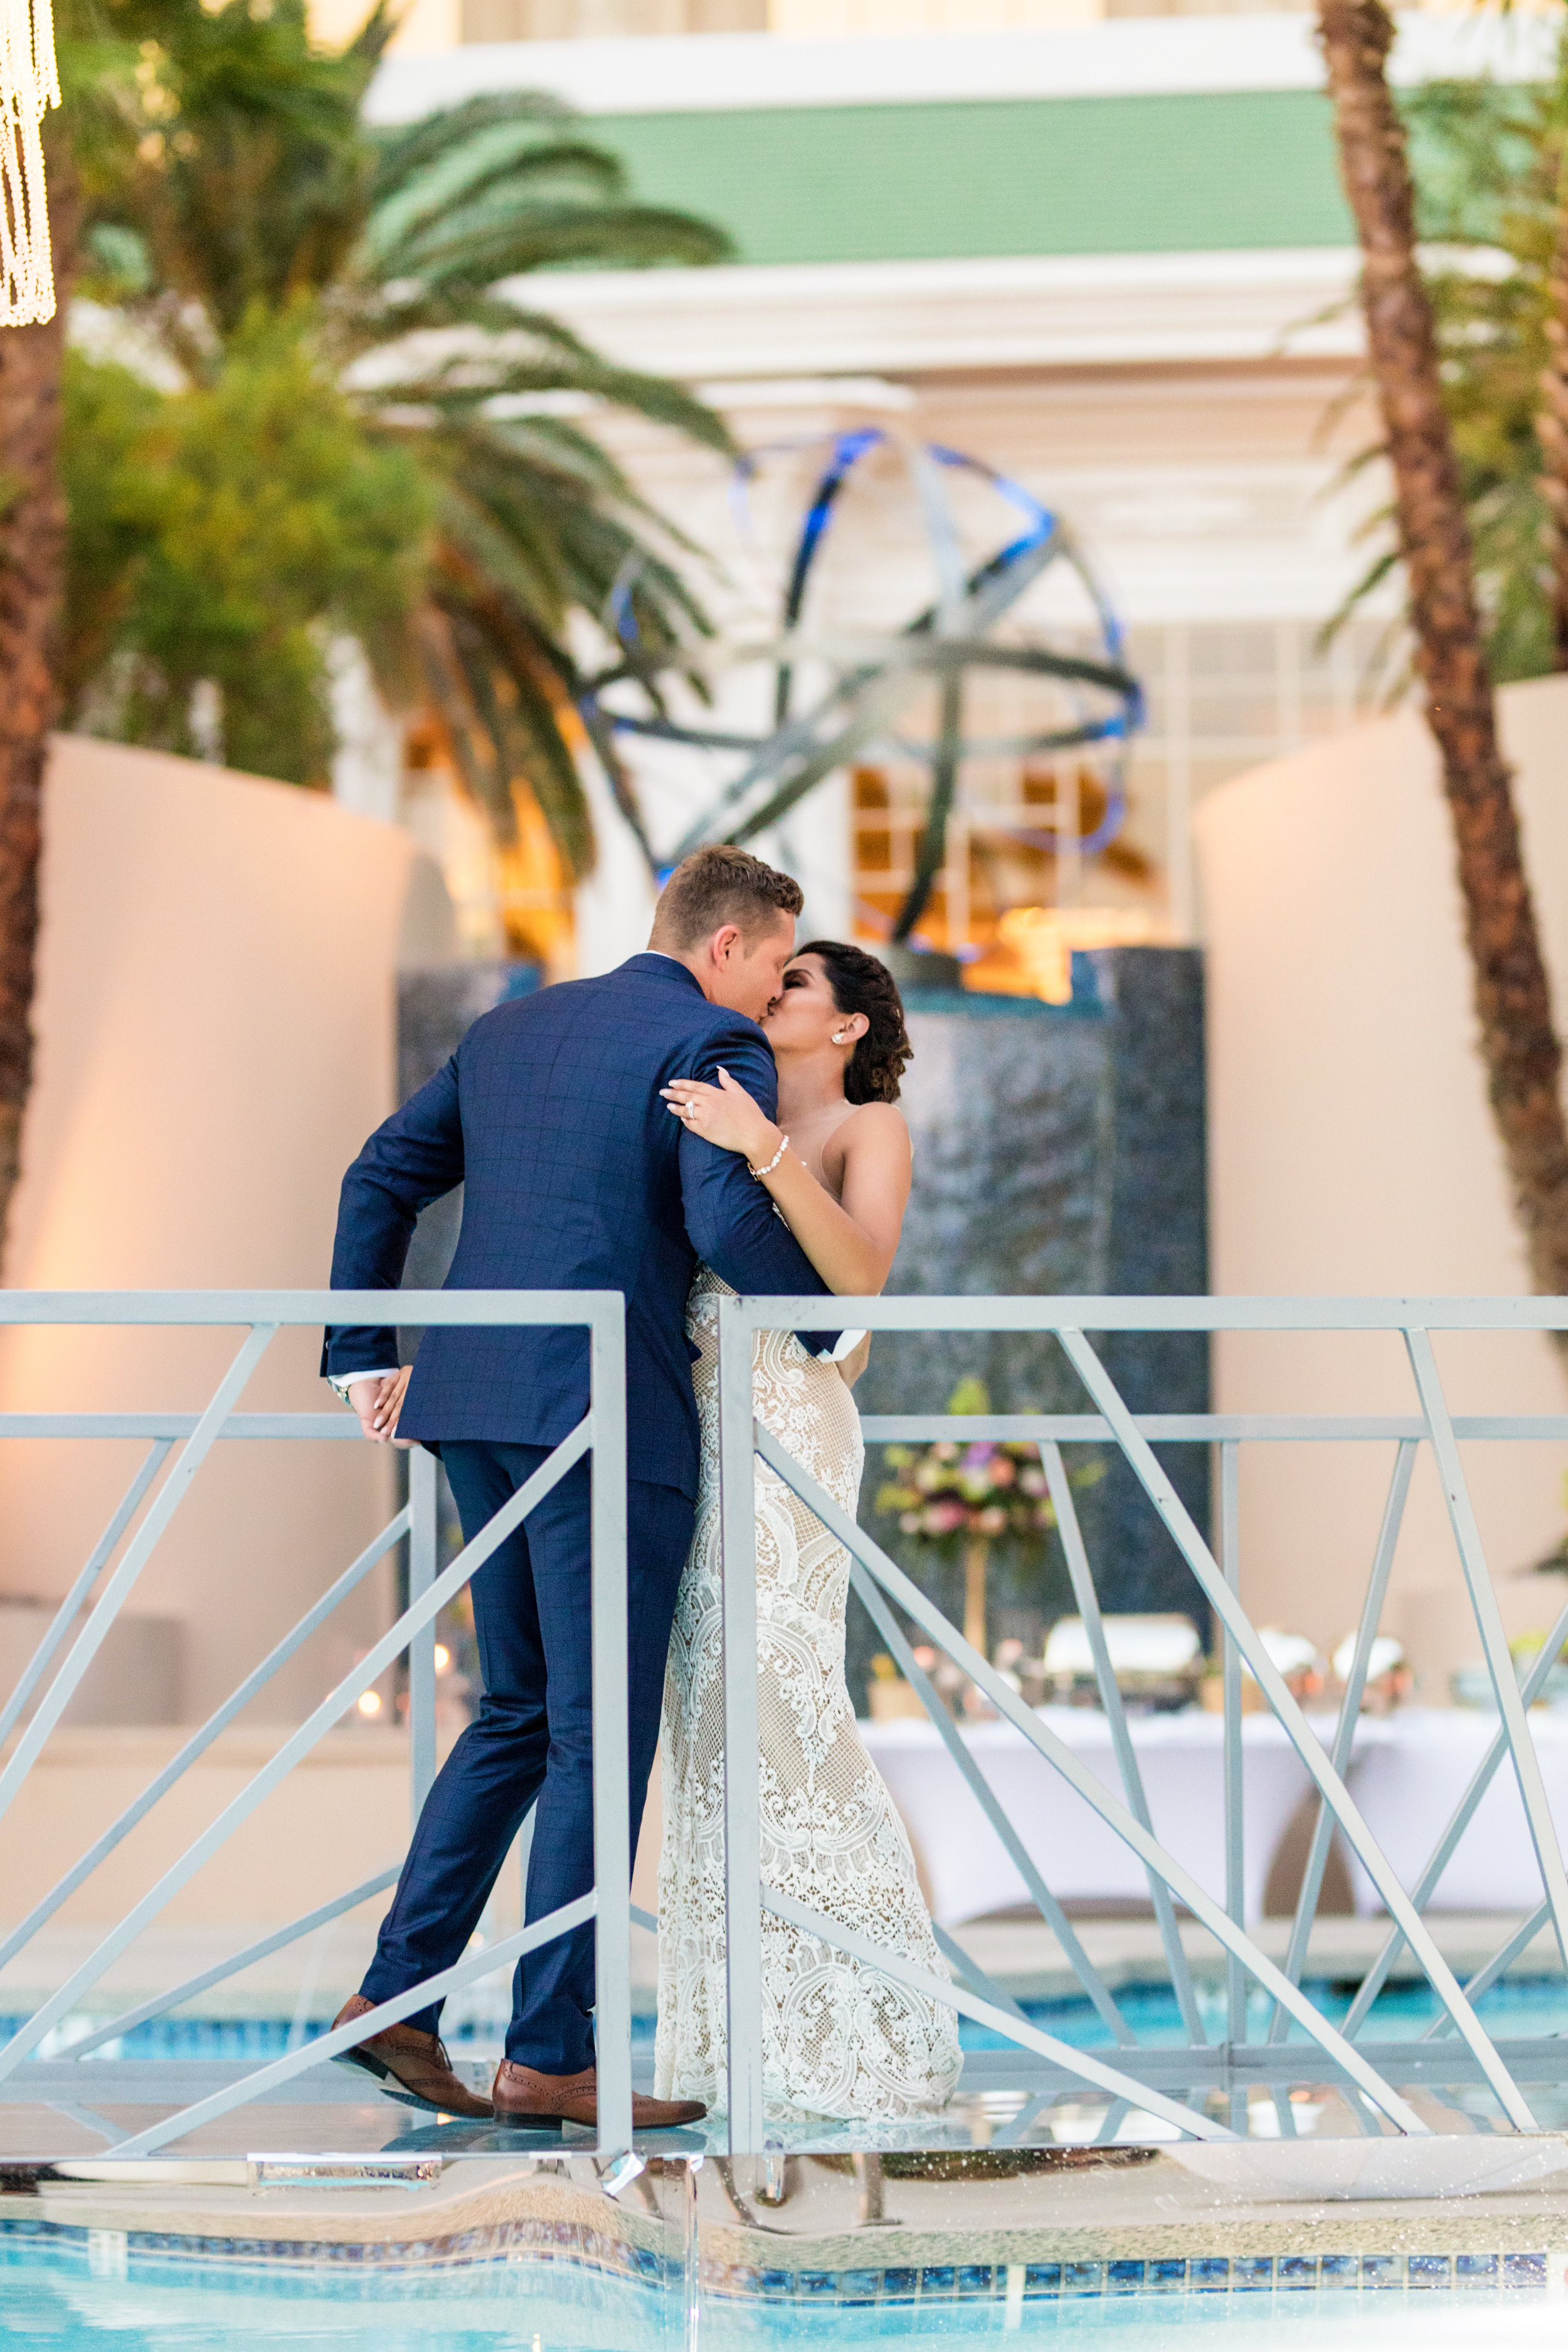 Bride and groom kiss on bridge over pool.Jewel toned wedding centerpieces with gold accents.Wedding Planning by  Andrea Eppolito Events  · Photography by  Shandro Photo   · Wedding Venue  Four Seasons Las Vegas  · Floral and Decor by  Destination by Design  · Cake by  Four Seasons Las Vegas  · Chandeliers and Lighting by  LED Unplugged  · Dress by  Berta  and Menu by Alligator Soup